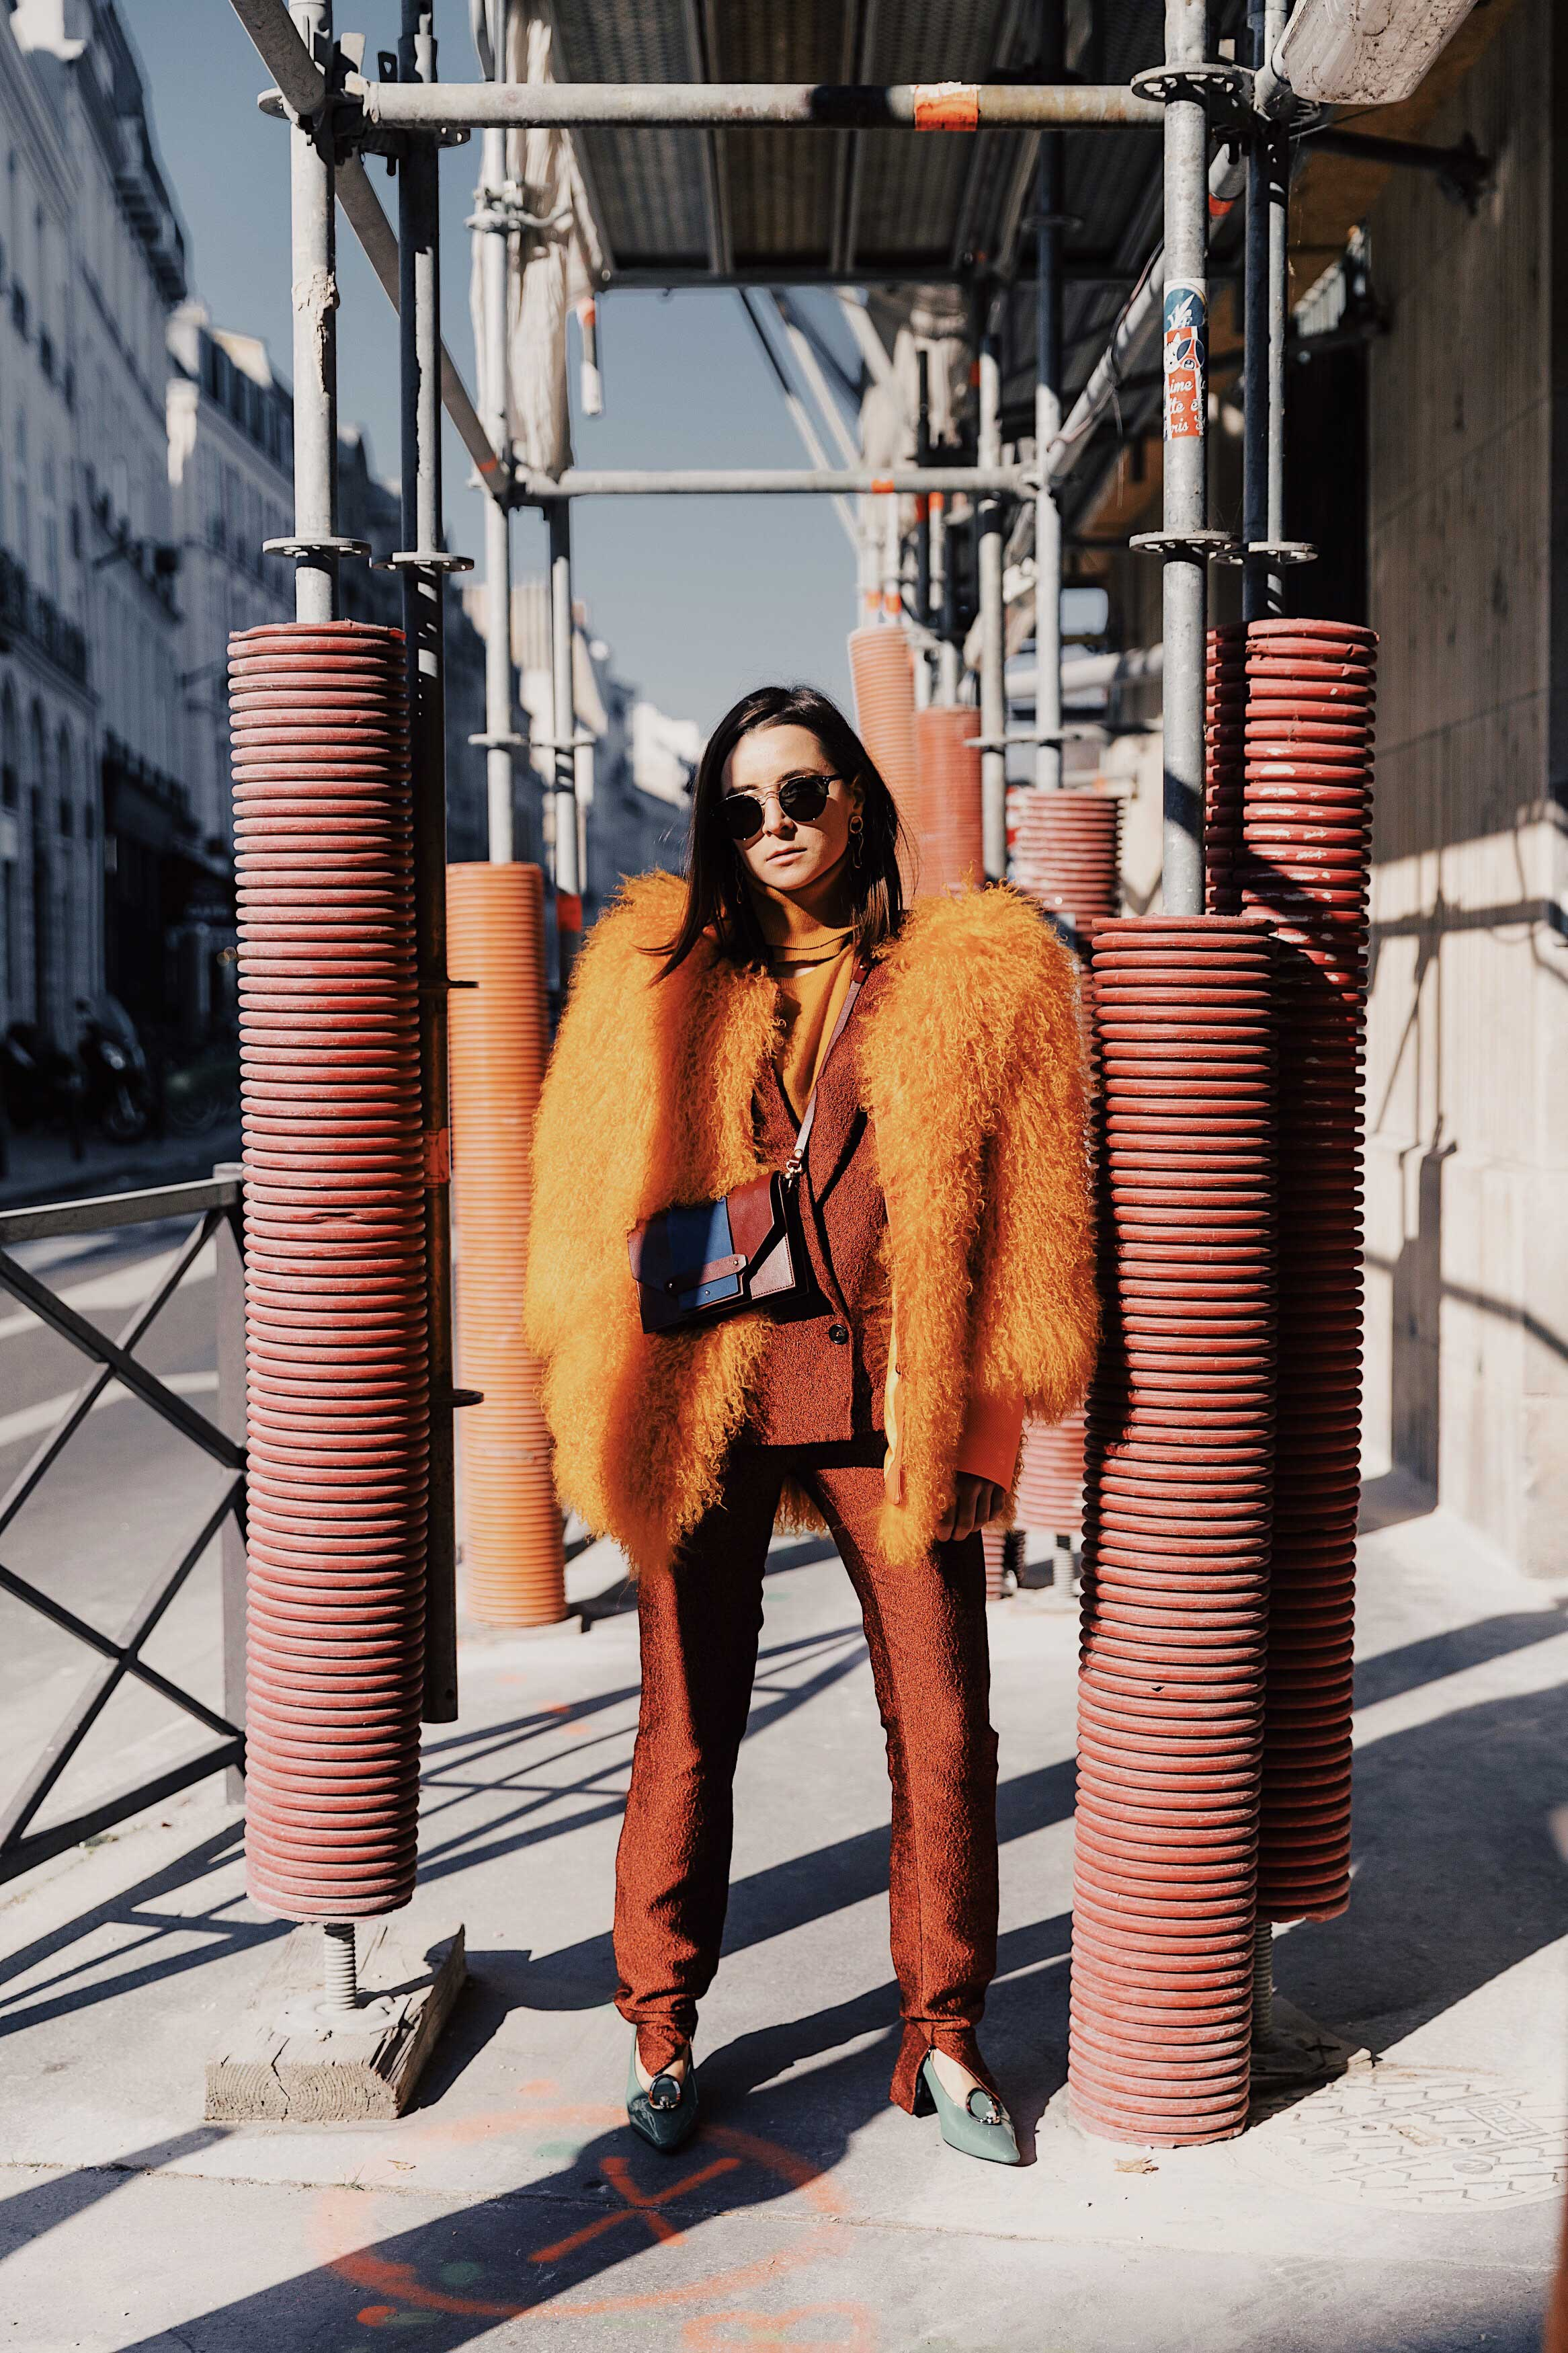 Best Street Style Paris Fashion Week Mars 2019 Julia Comil / French Fashion Blogger in Los Angeles Outfit for PFW Fall Winter 2019 show - Suit Chalayan Studio, coat: Lisou London, Bag Neko Neko Paris, shoes Yuul Yie, top, sunglasses Cutler and cross